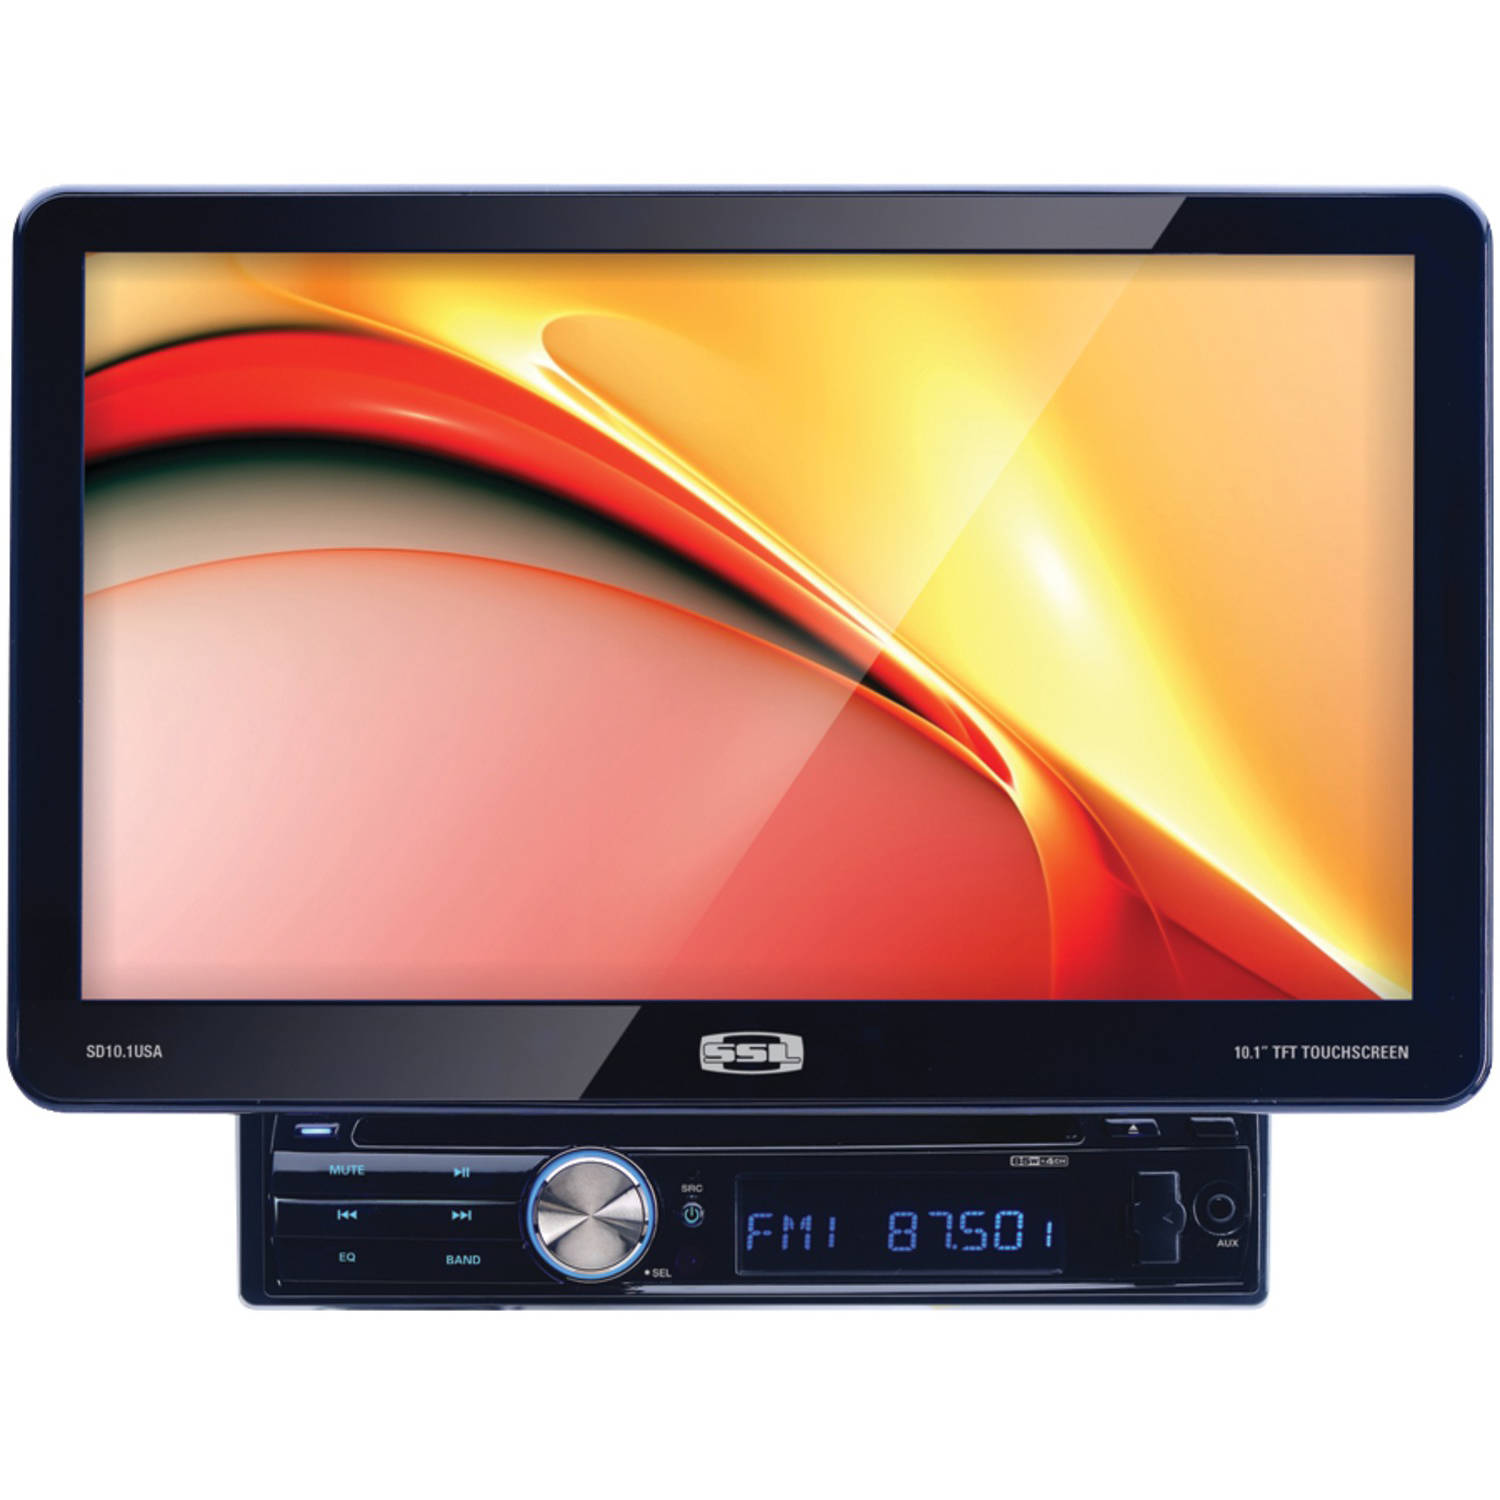 "Soundstorm SD10.1USA 10.1"" Single-DIN In-Dash DVD Receiver with Detachable Touchscreen Monitor without Bluetooth"